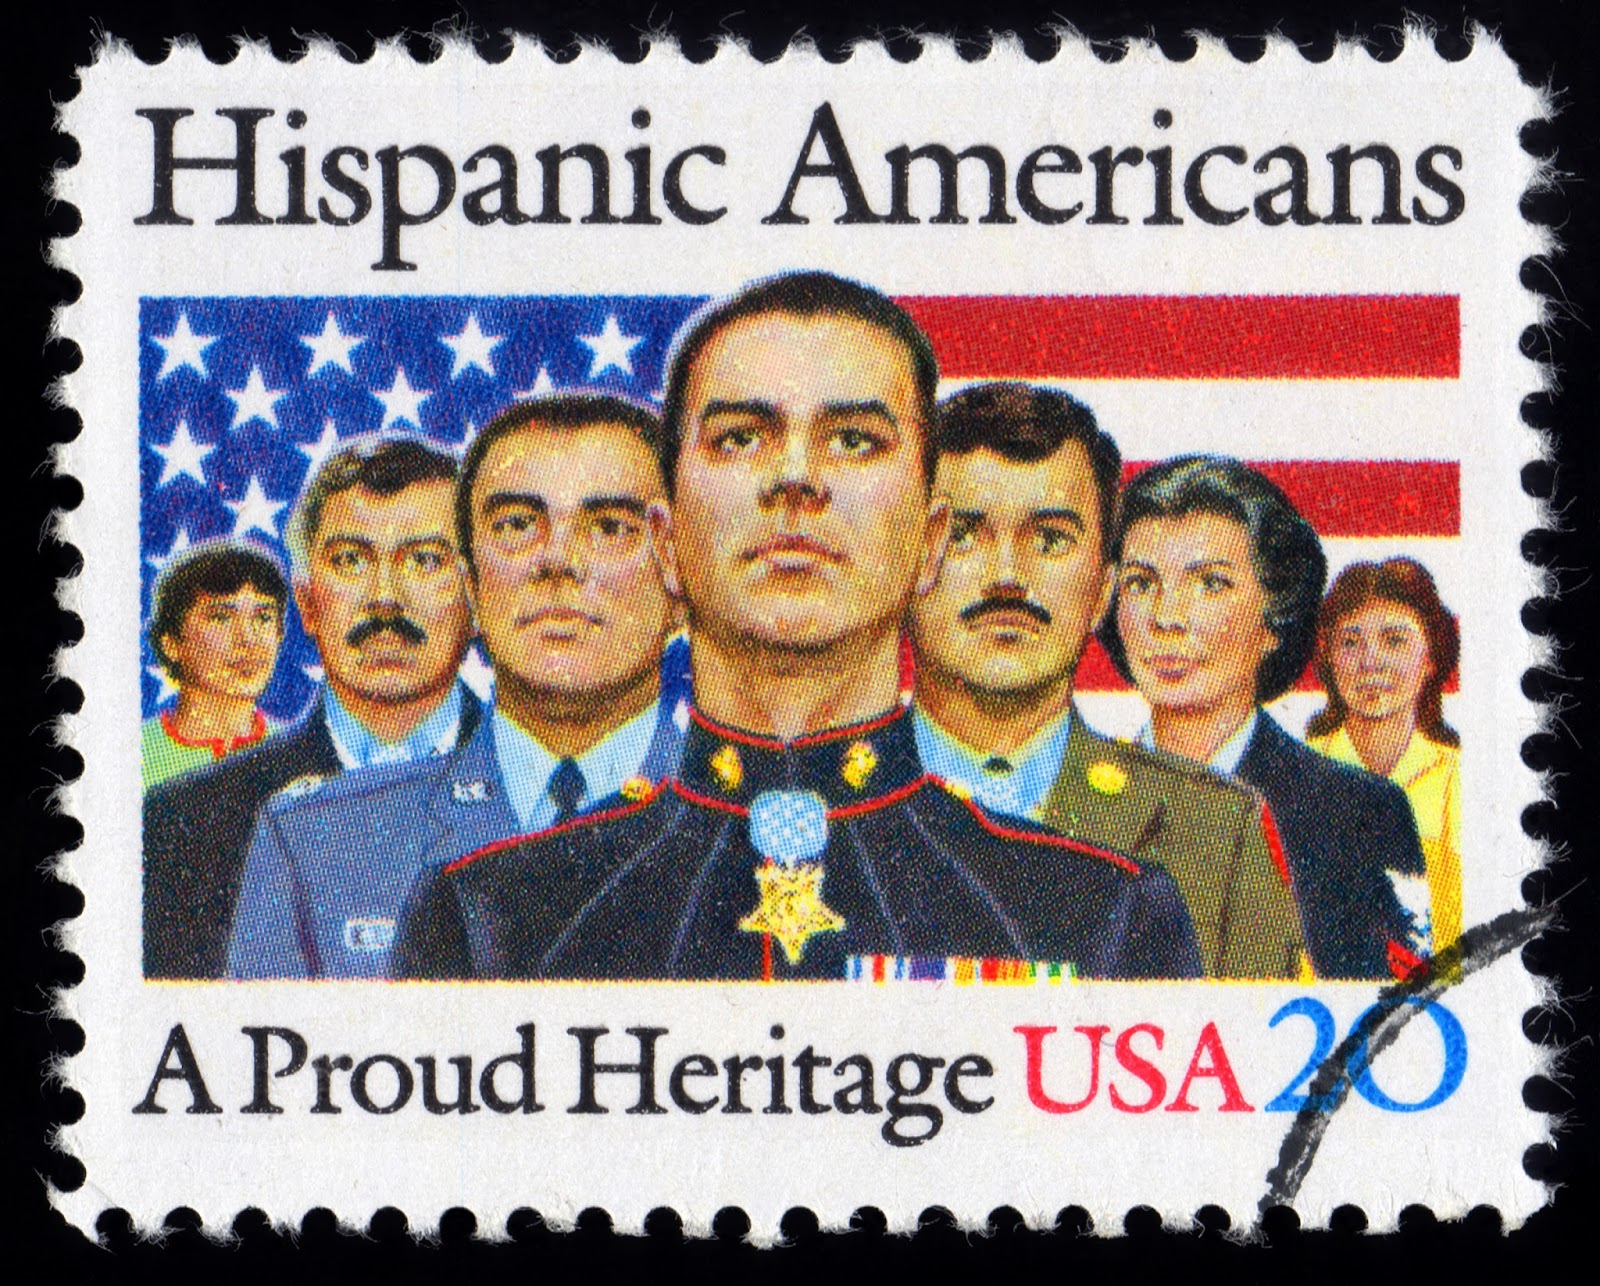 Hispanic Americans Puts Faces On Over 500 Years Of